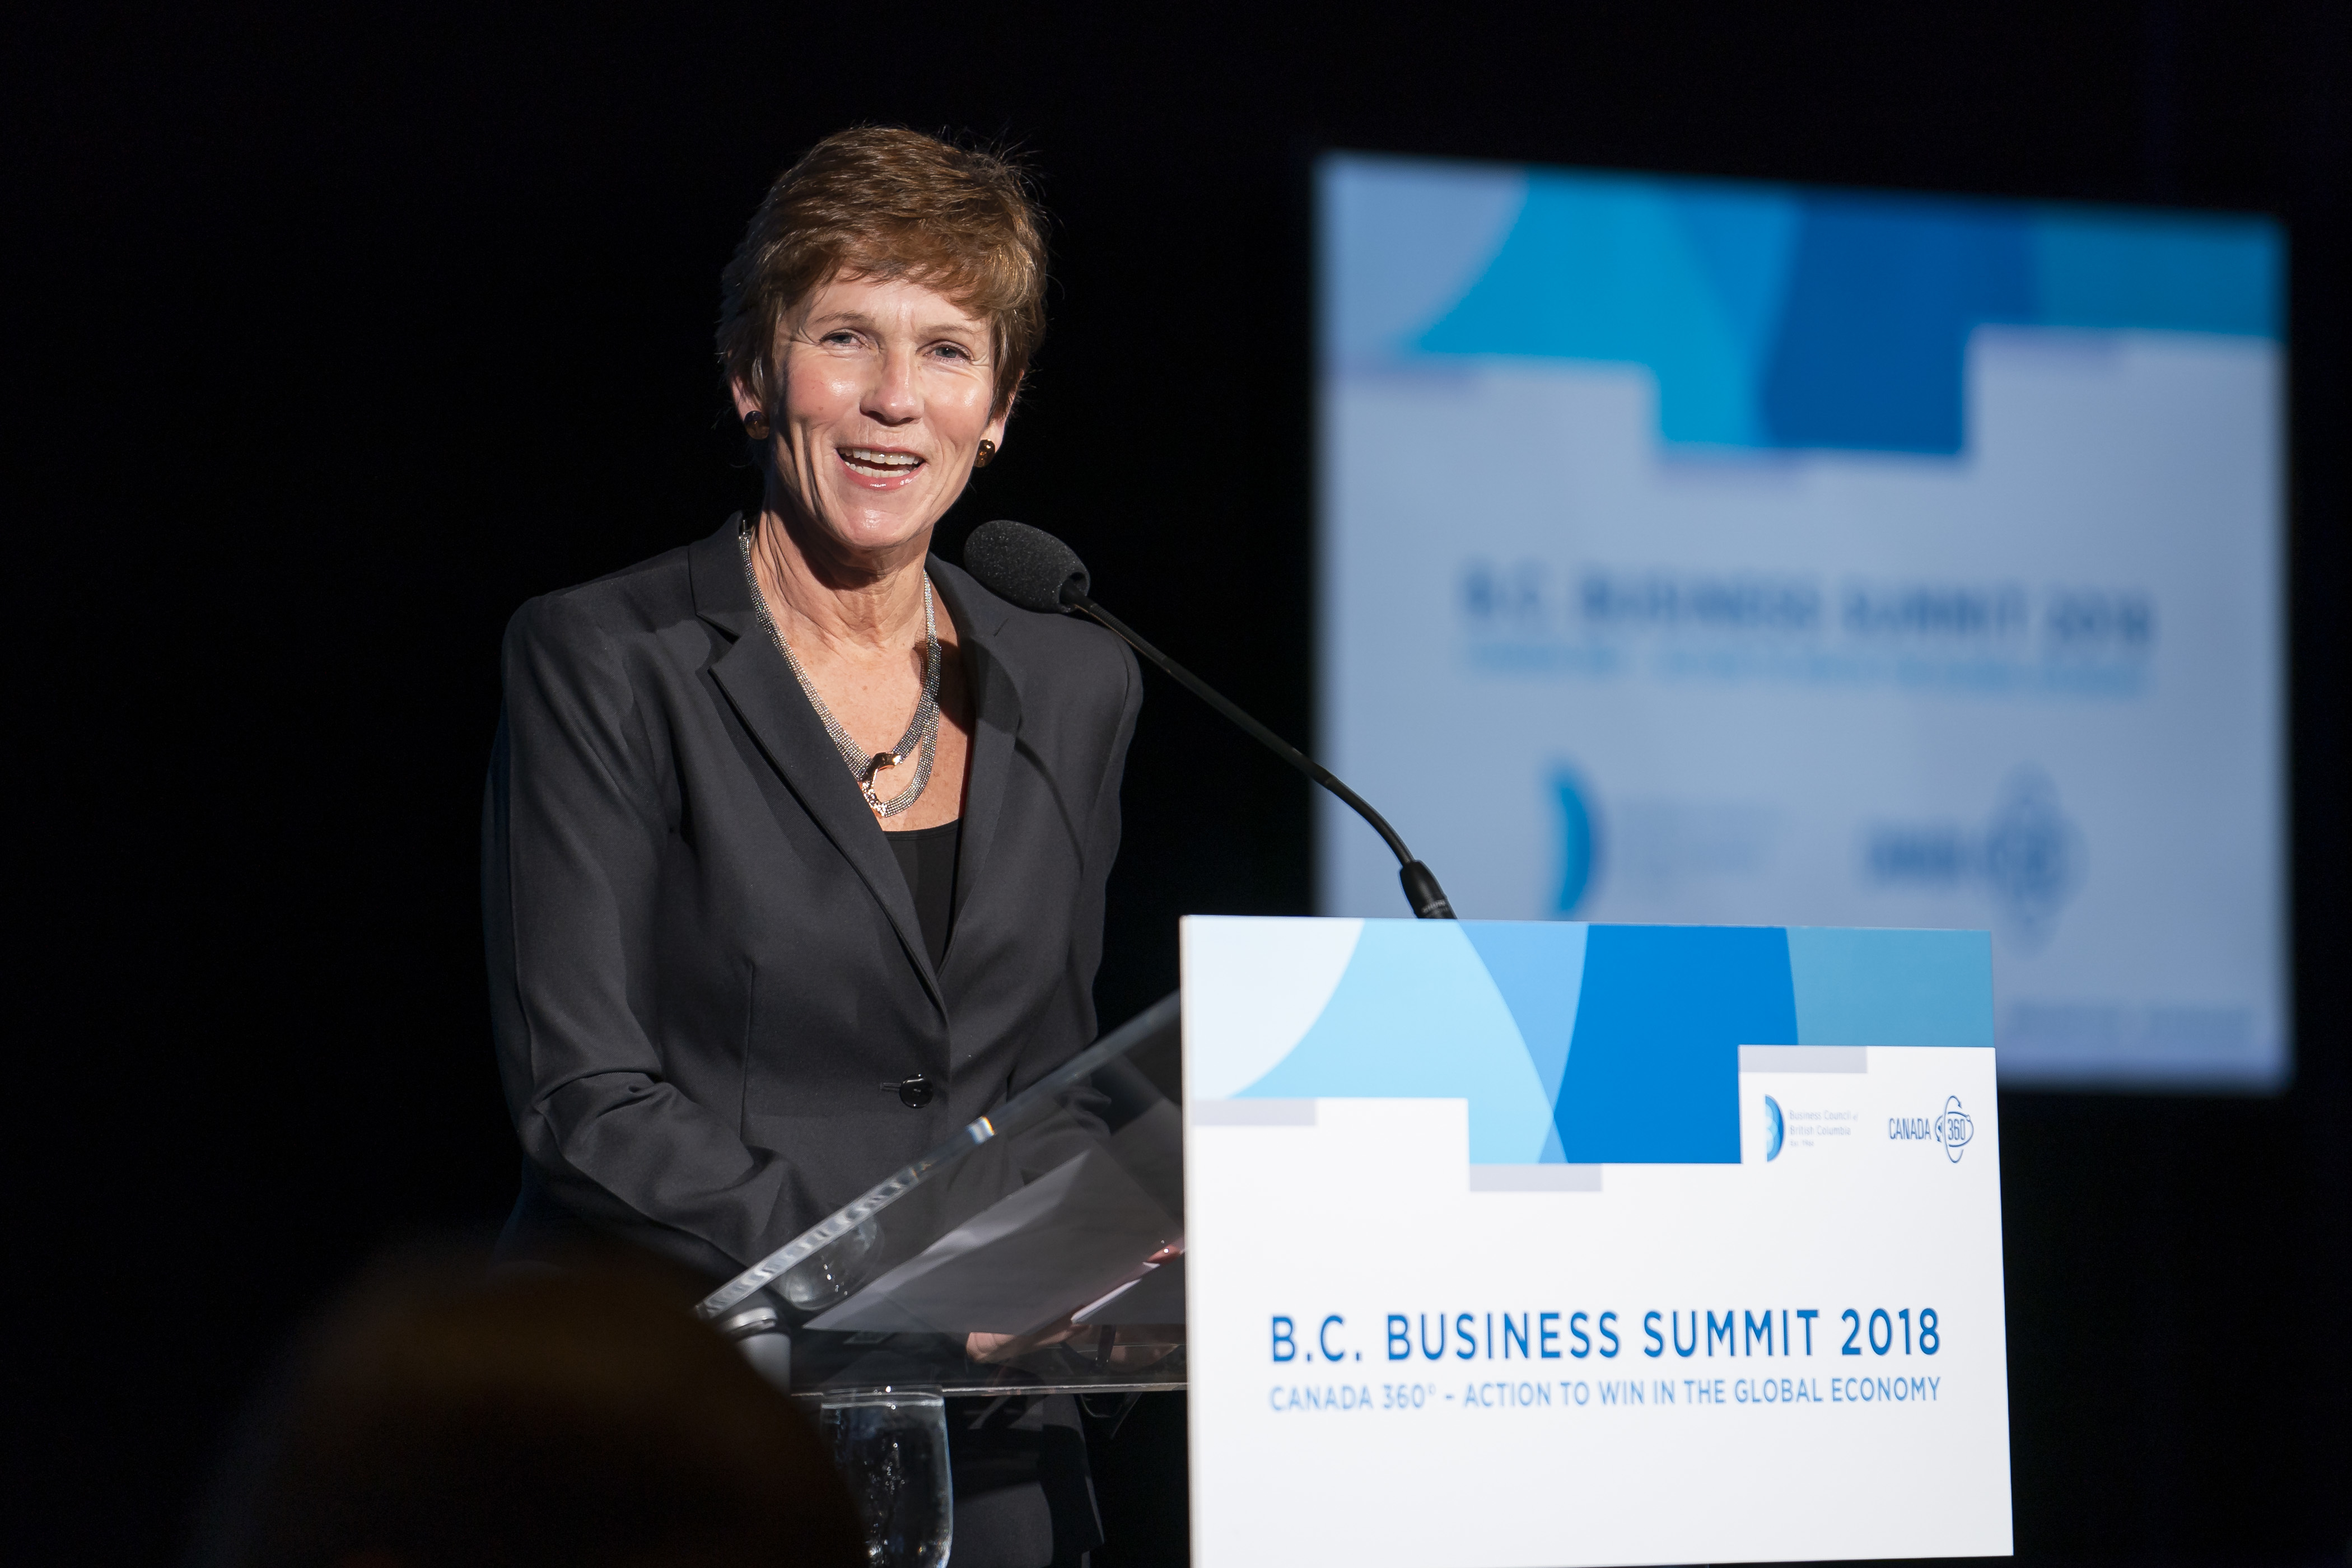 B.C. Business Summit 2018: Canada 360° - Action to Win in the Global Economy